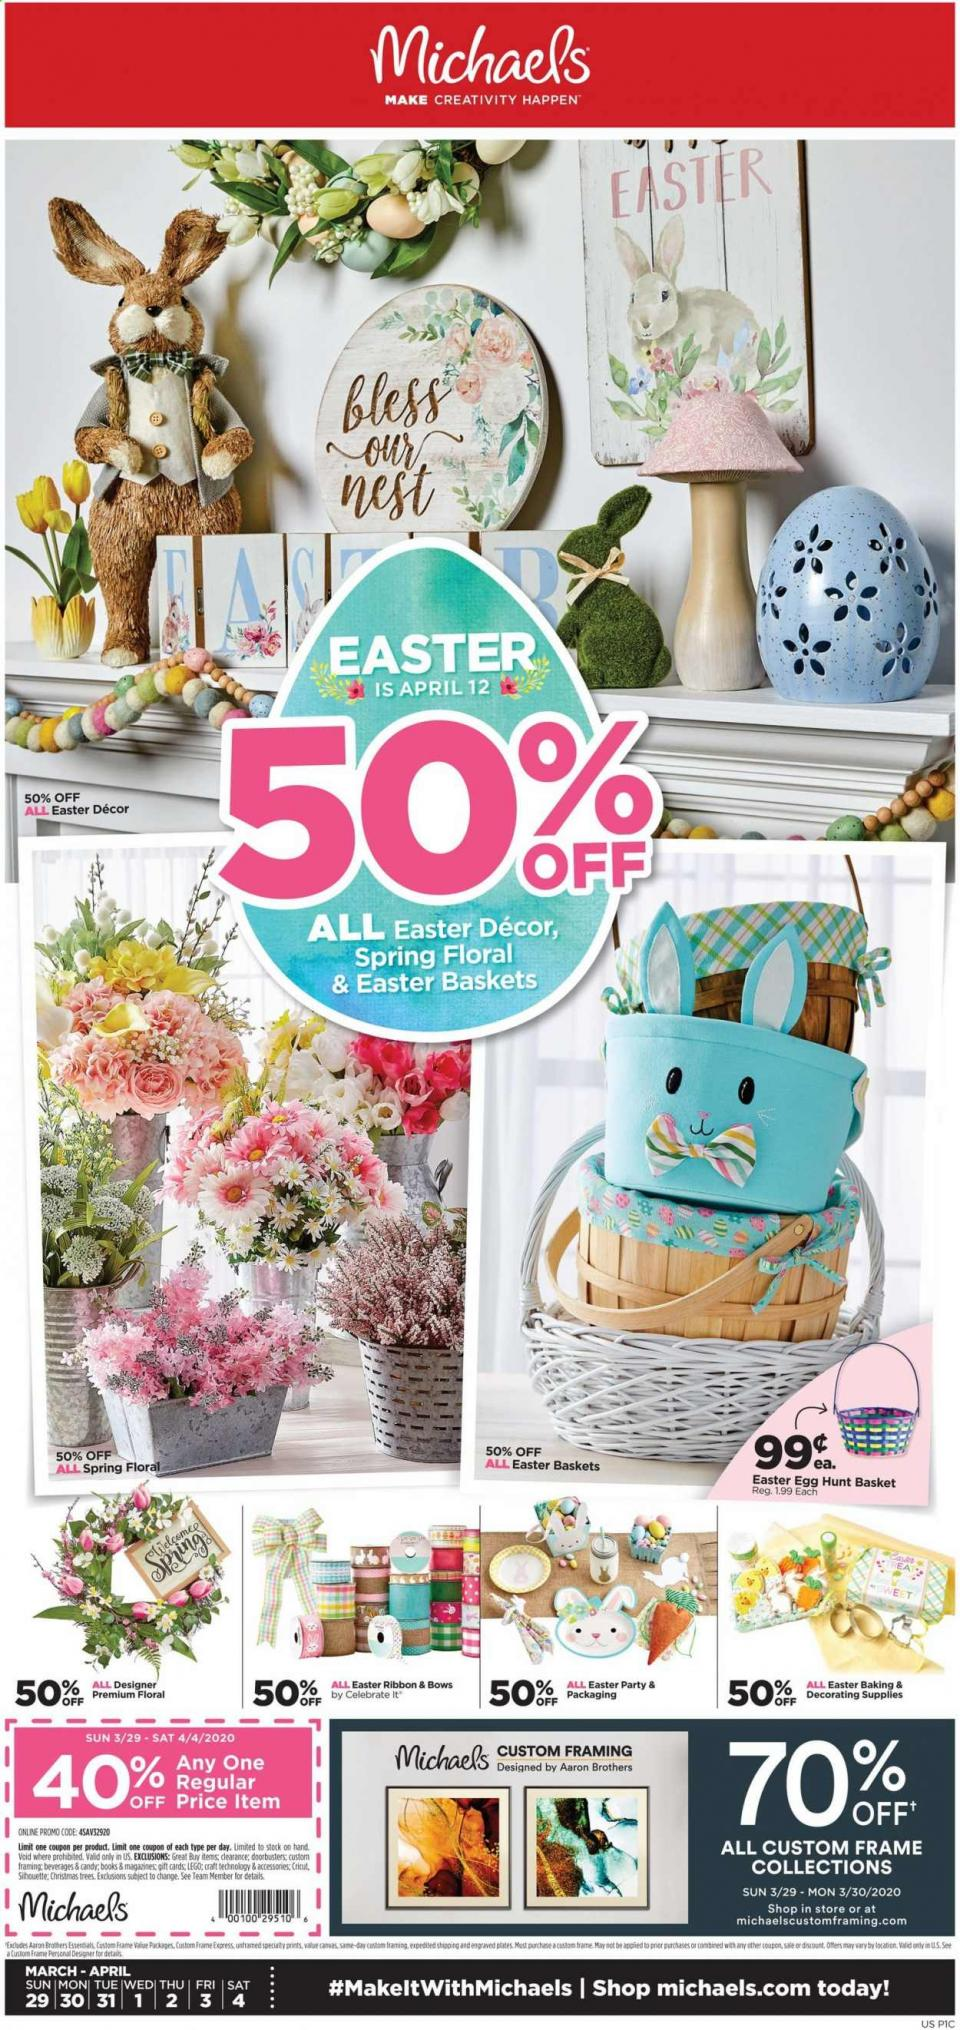 Michaels Easter Weekly Ad valid from Mar 29 – Apr 4, 2020.